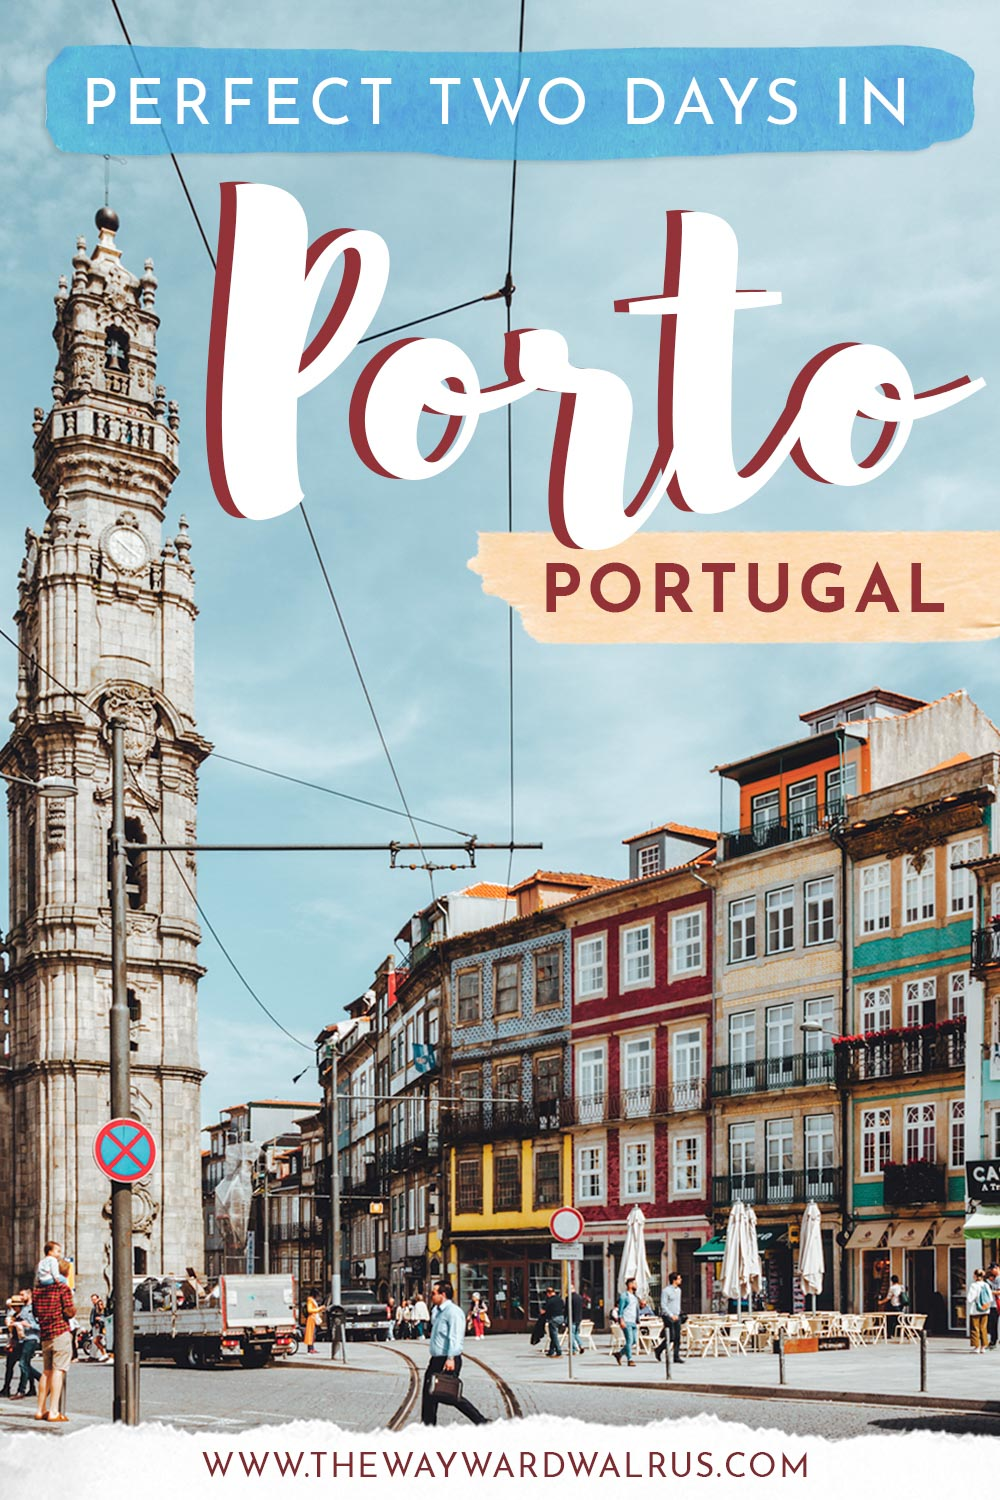 Everything you need to know for your weekend getaway to Porto, Portugal. Includes where to stay, top attractions, transportation and what to eat during your stay in Porto. #Porto #Portugal #TheWaywardWalrus